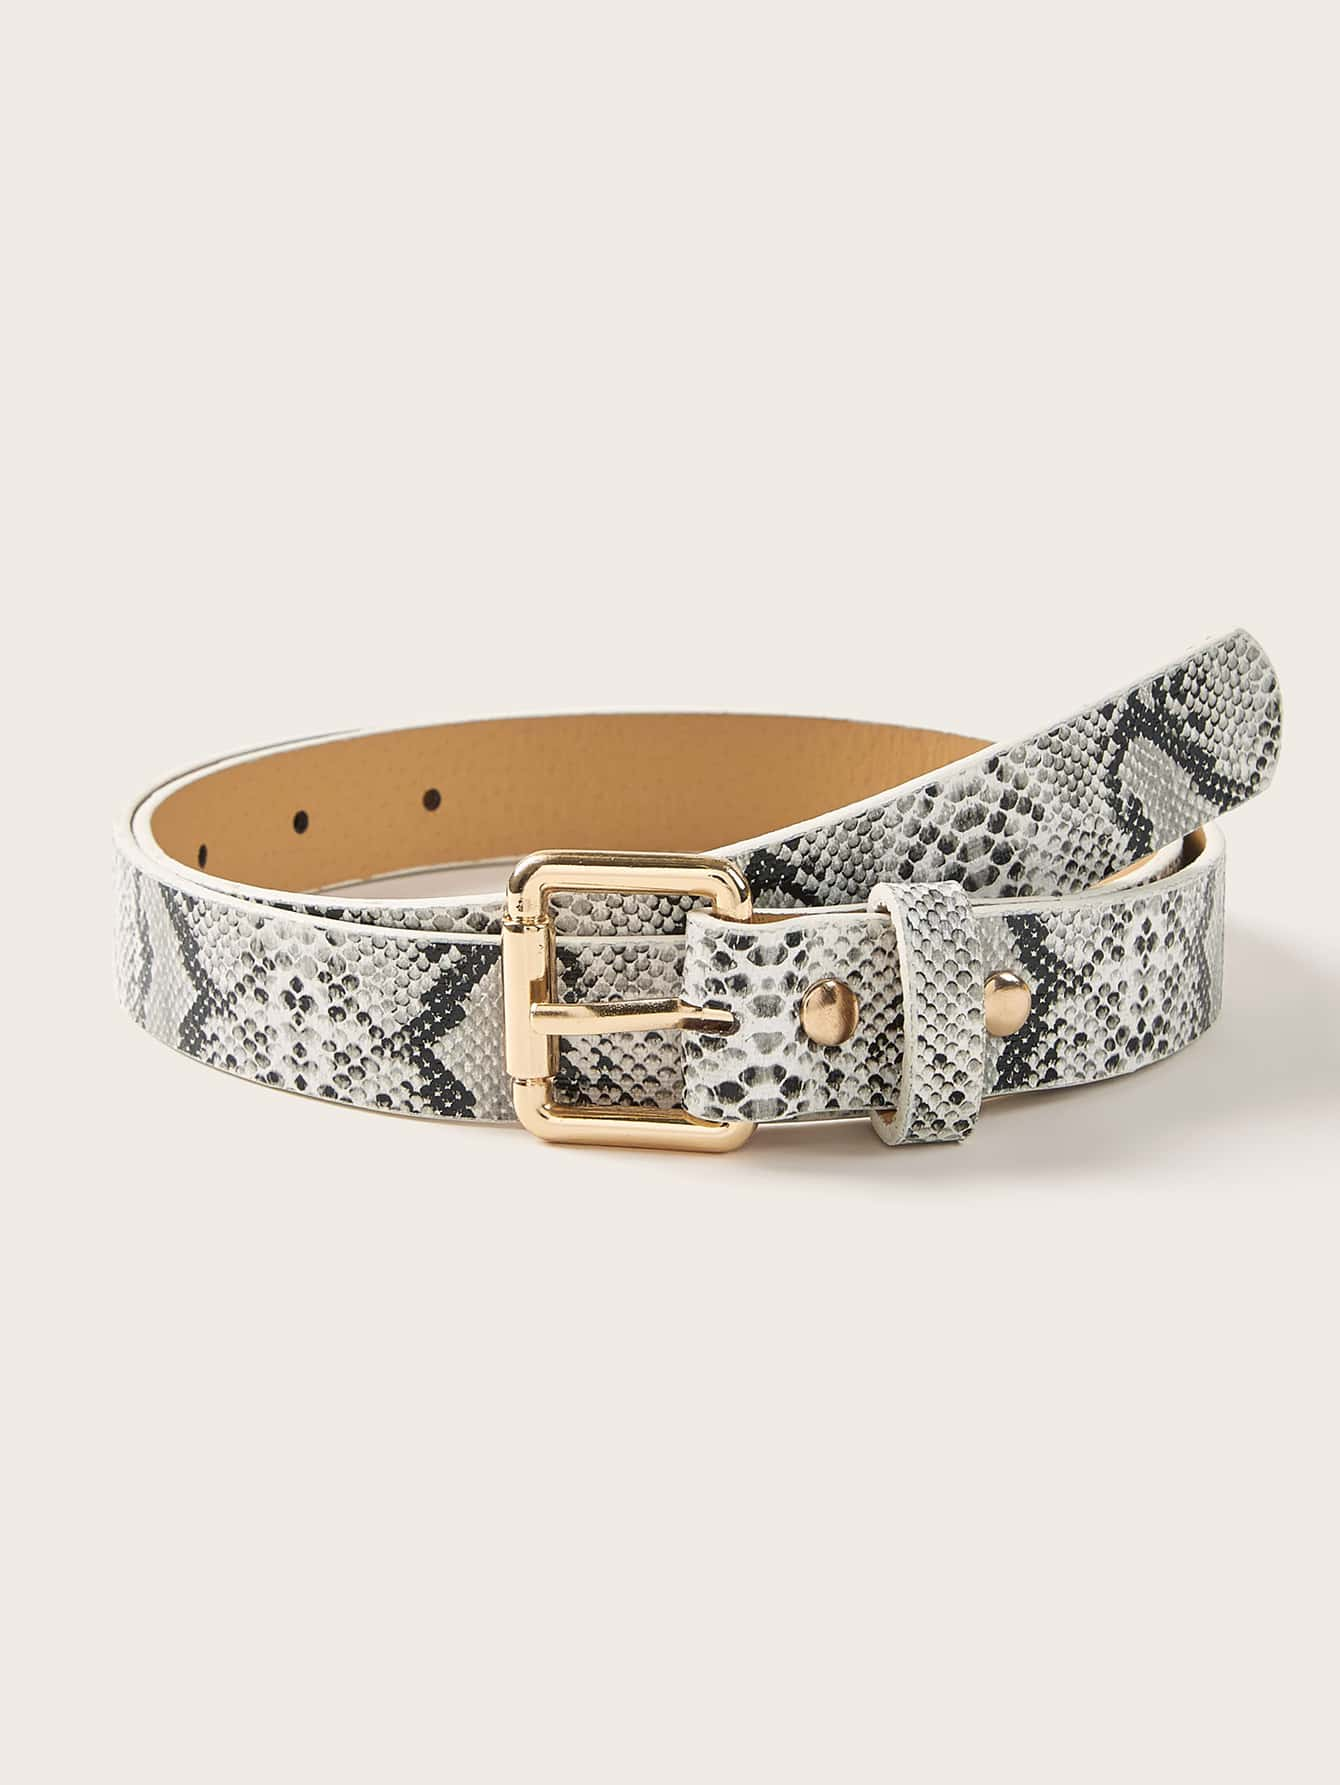 Snakeskin Pattern Buckle Belt - FLJ CORPORATIONS